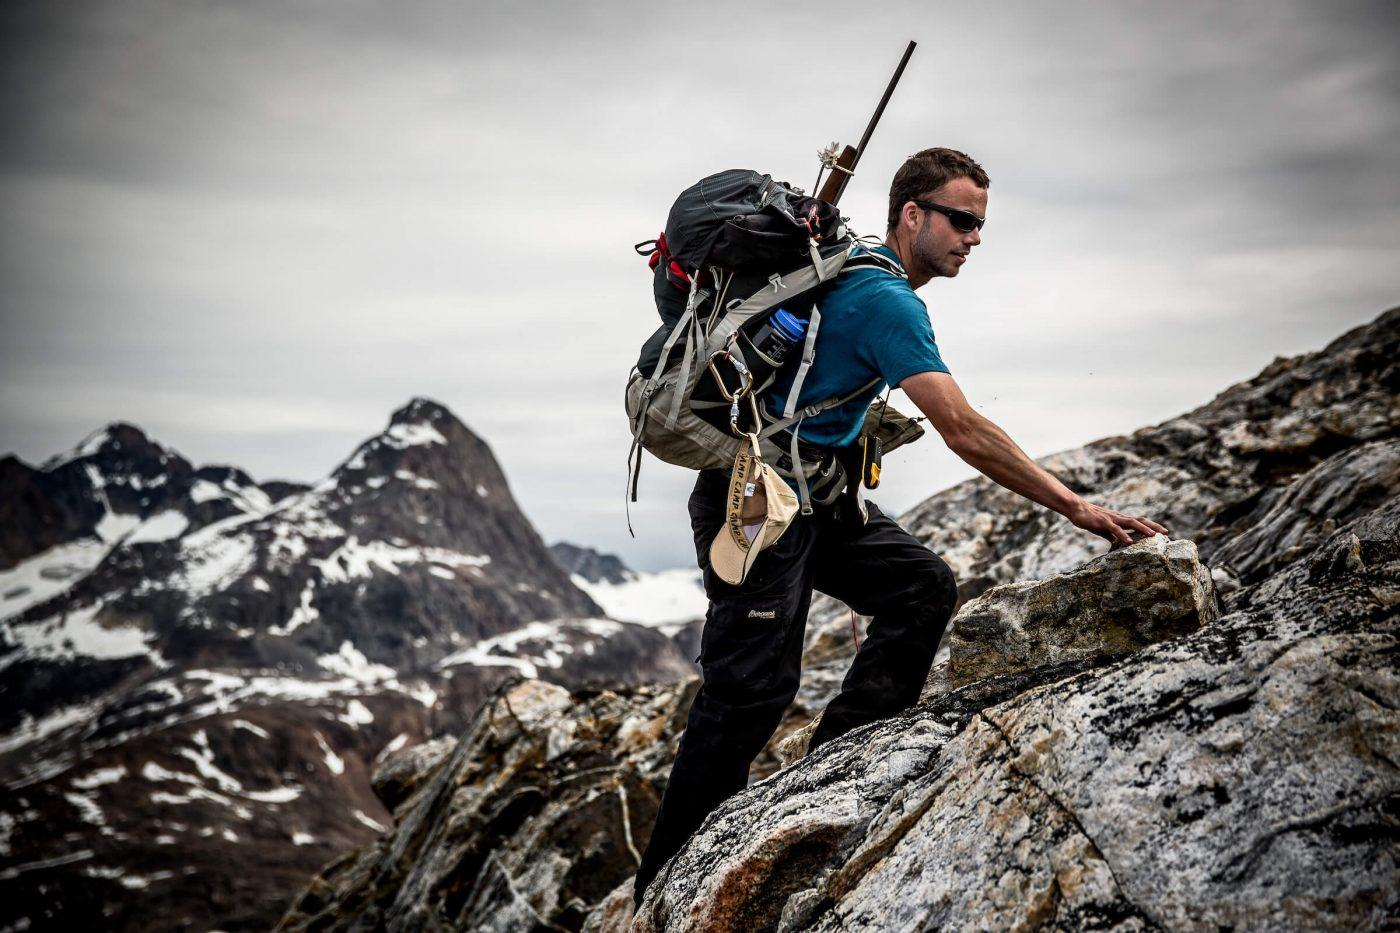 A Greenland Travel hiking guide on a trek in East Greenland near Tasiilaq. By Mads Pihl